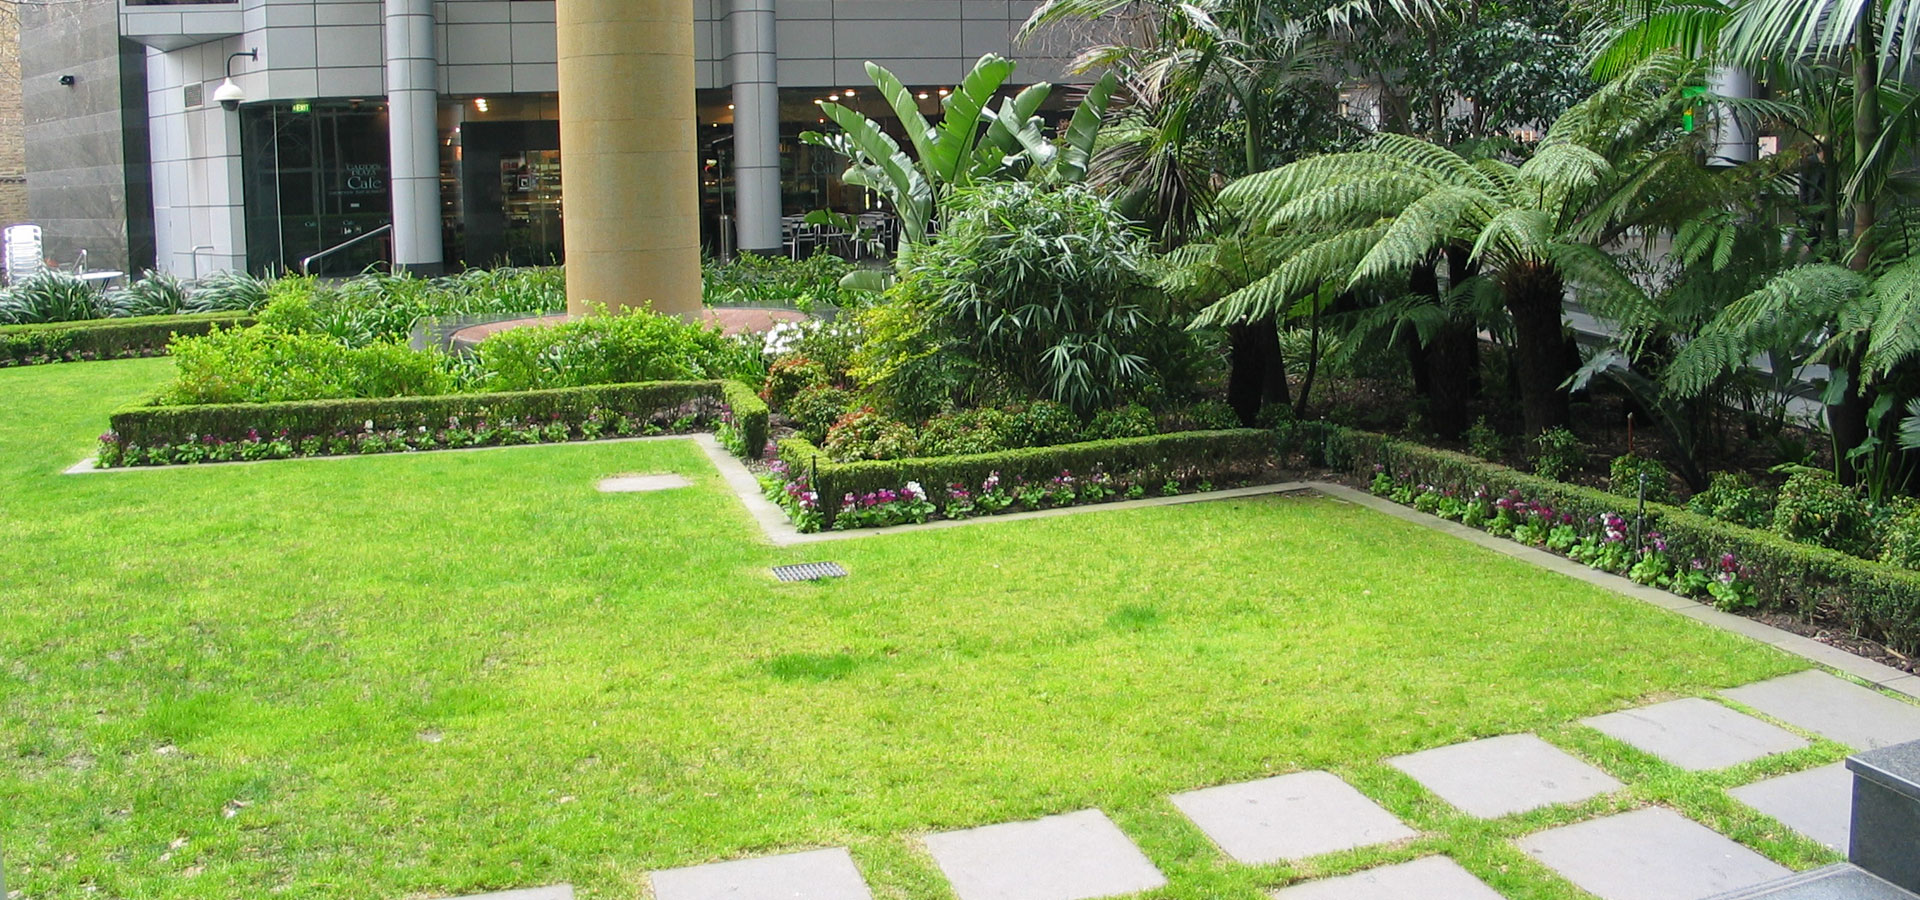 corporate landscape spaces